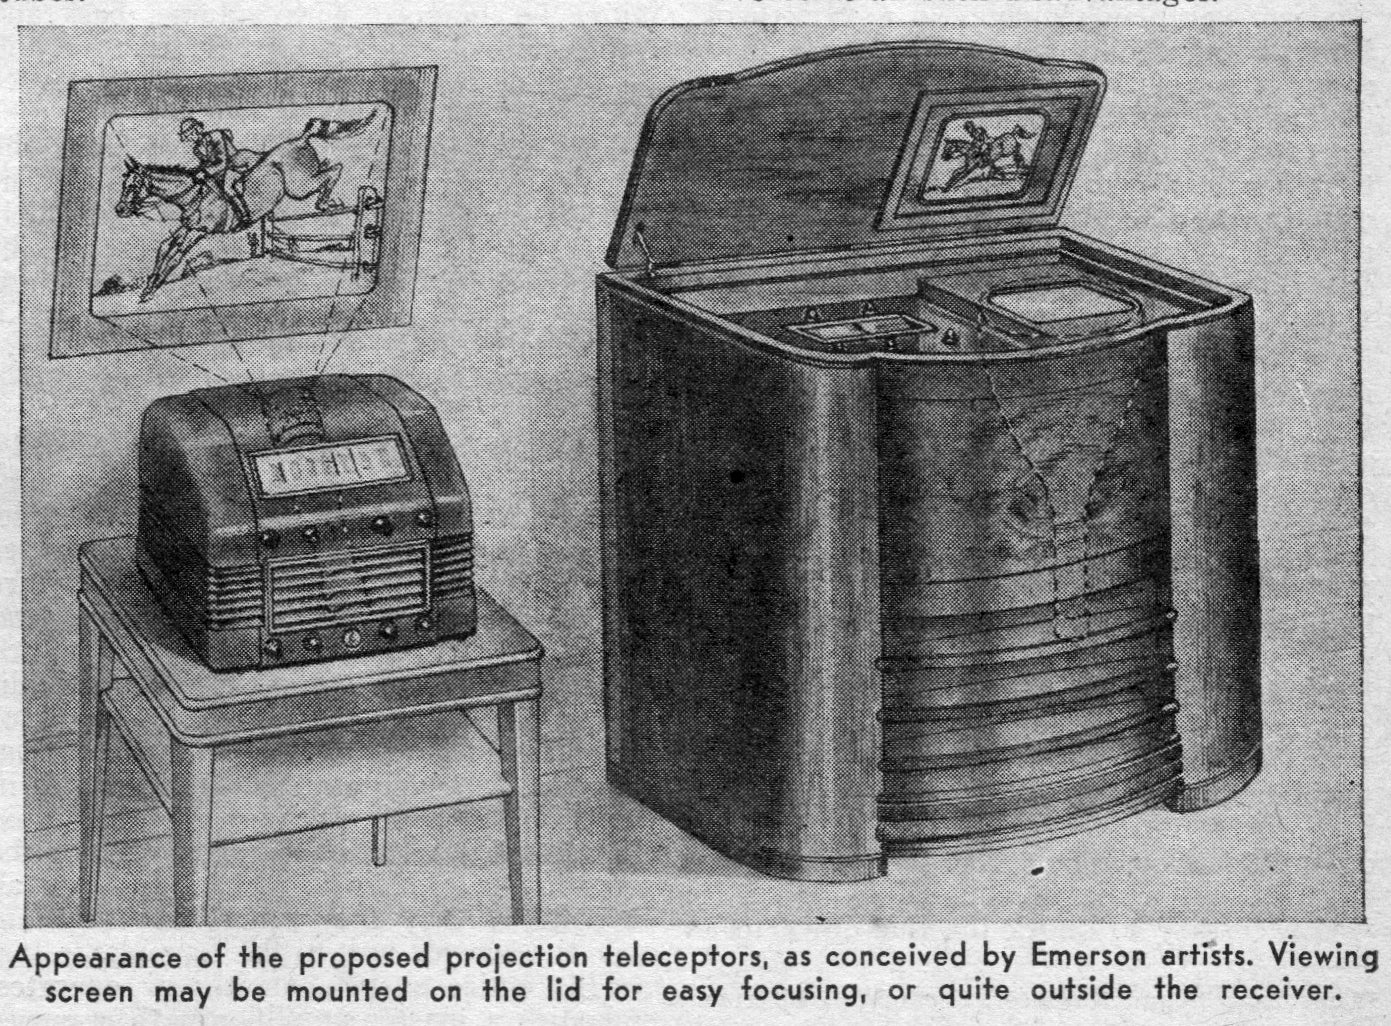 1944's Big Screen TV of the Future Wasn't Much Bigger Than a MacBook